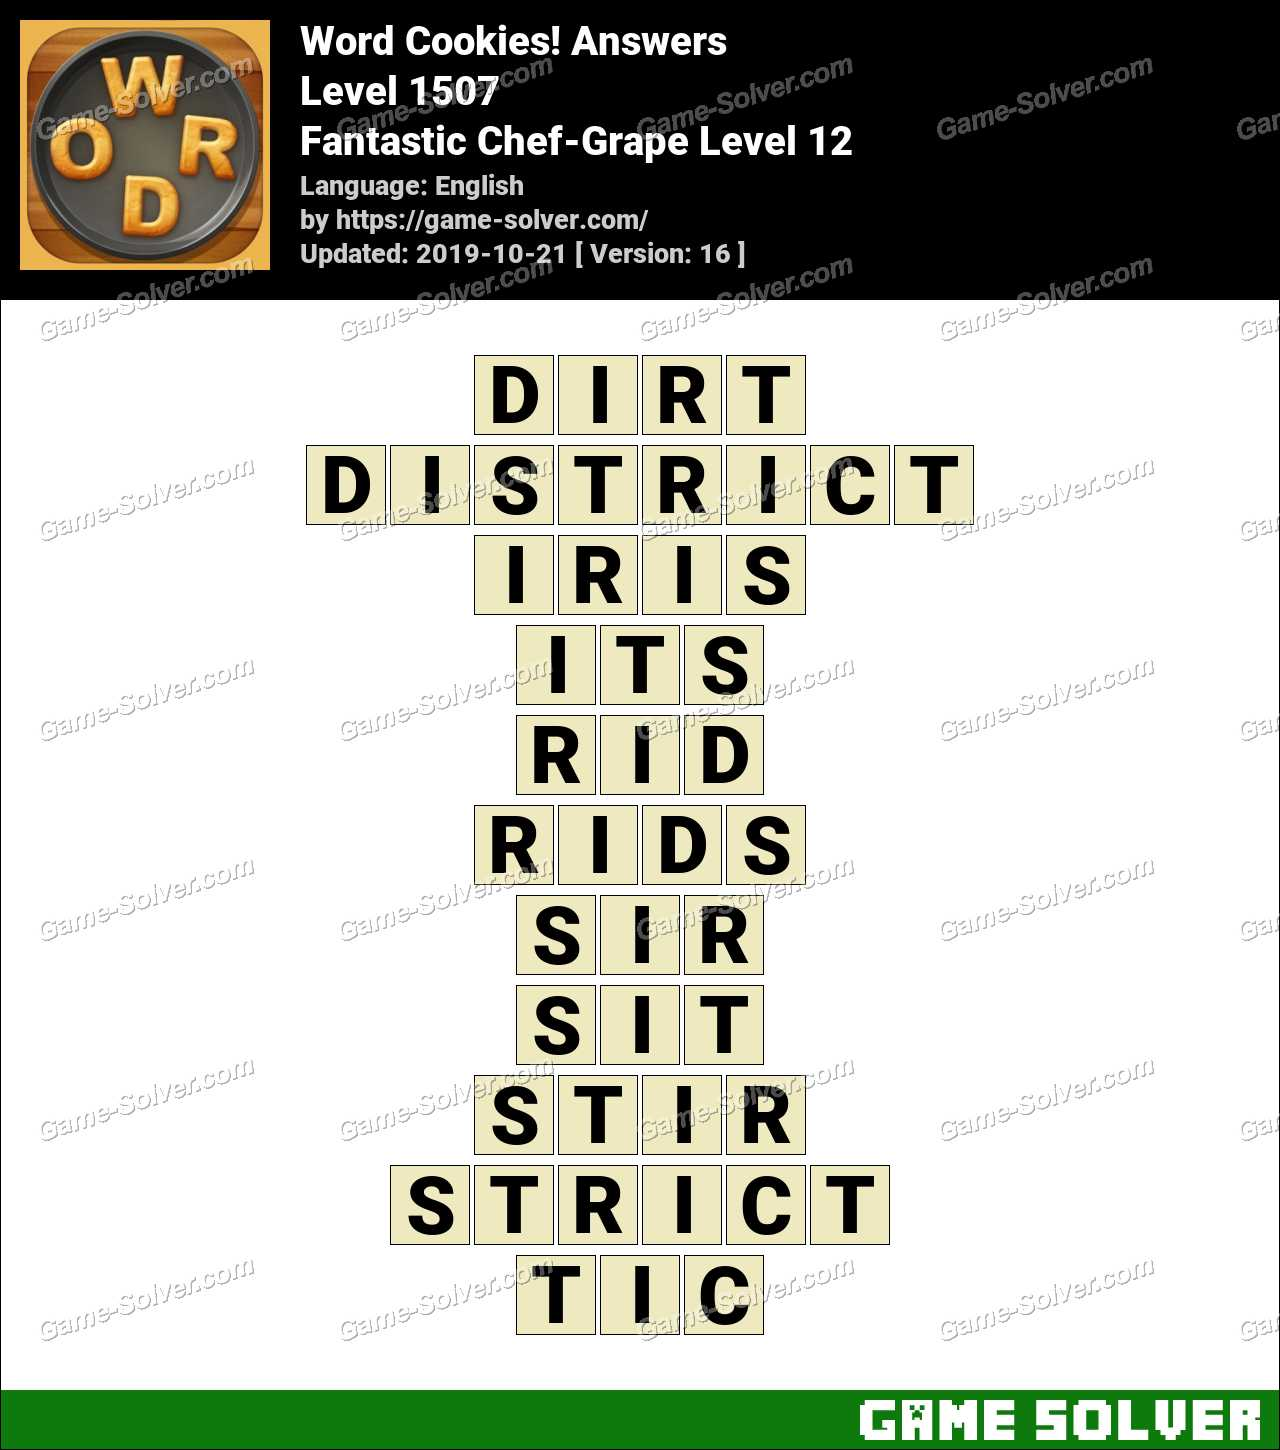 Word Cookies Fantastic Chef-Grape Level 12 Answers